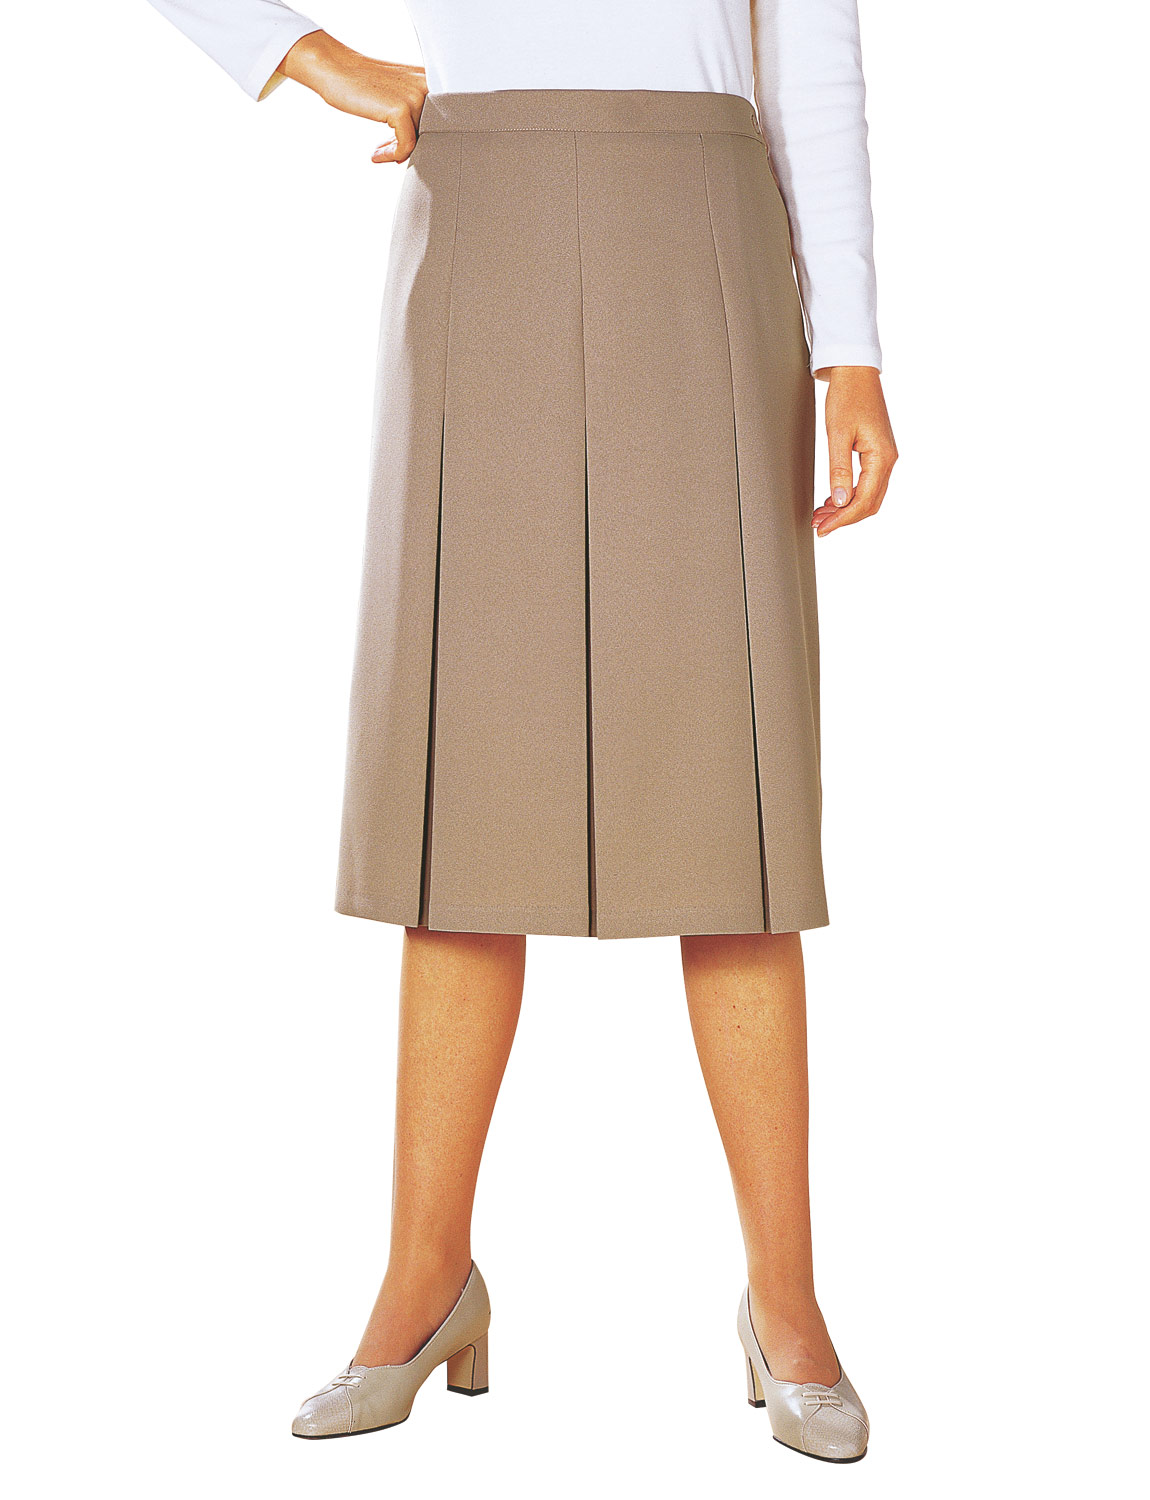 inverted pleat skirt 27 inches